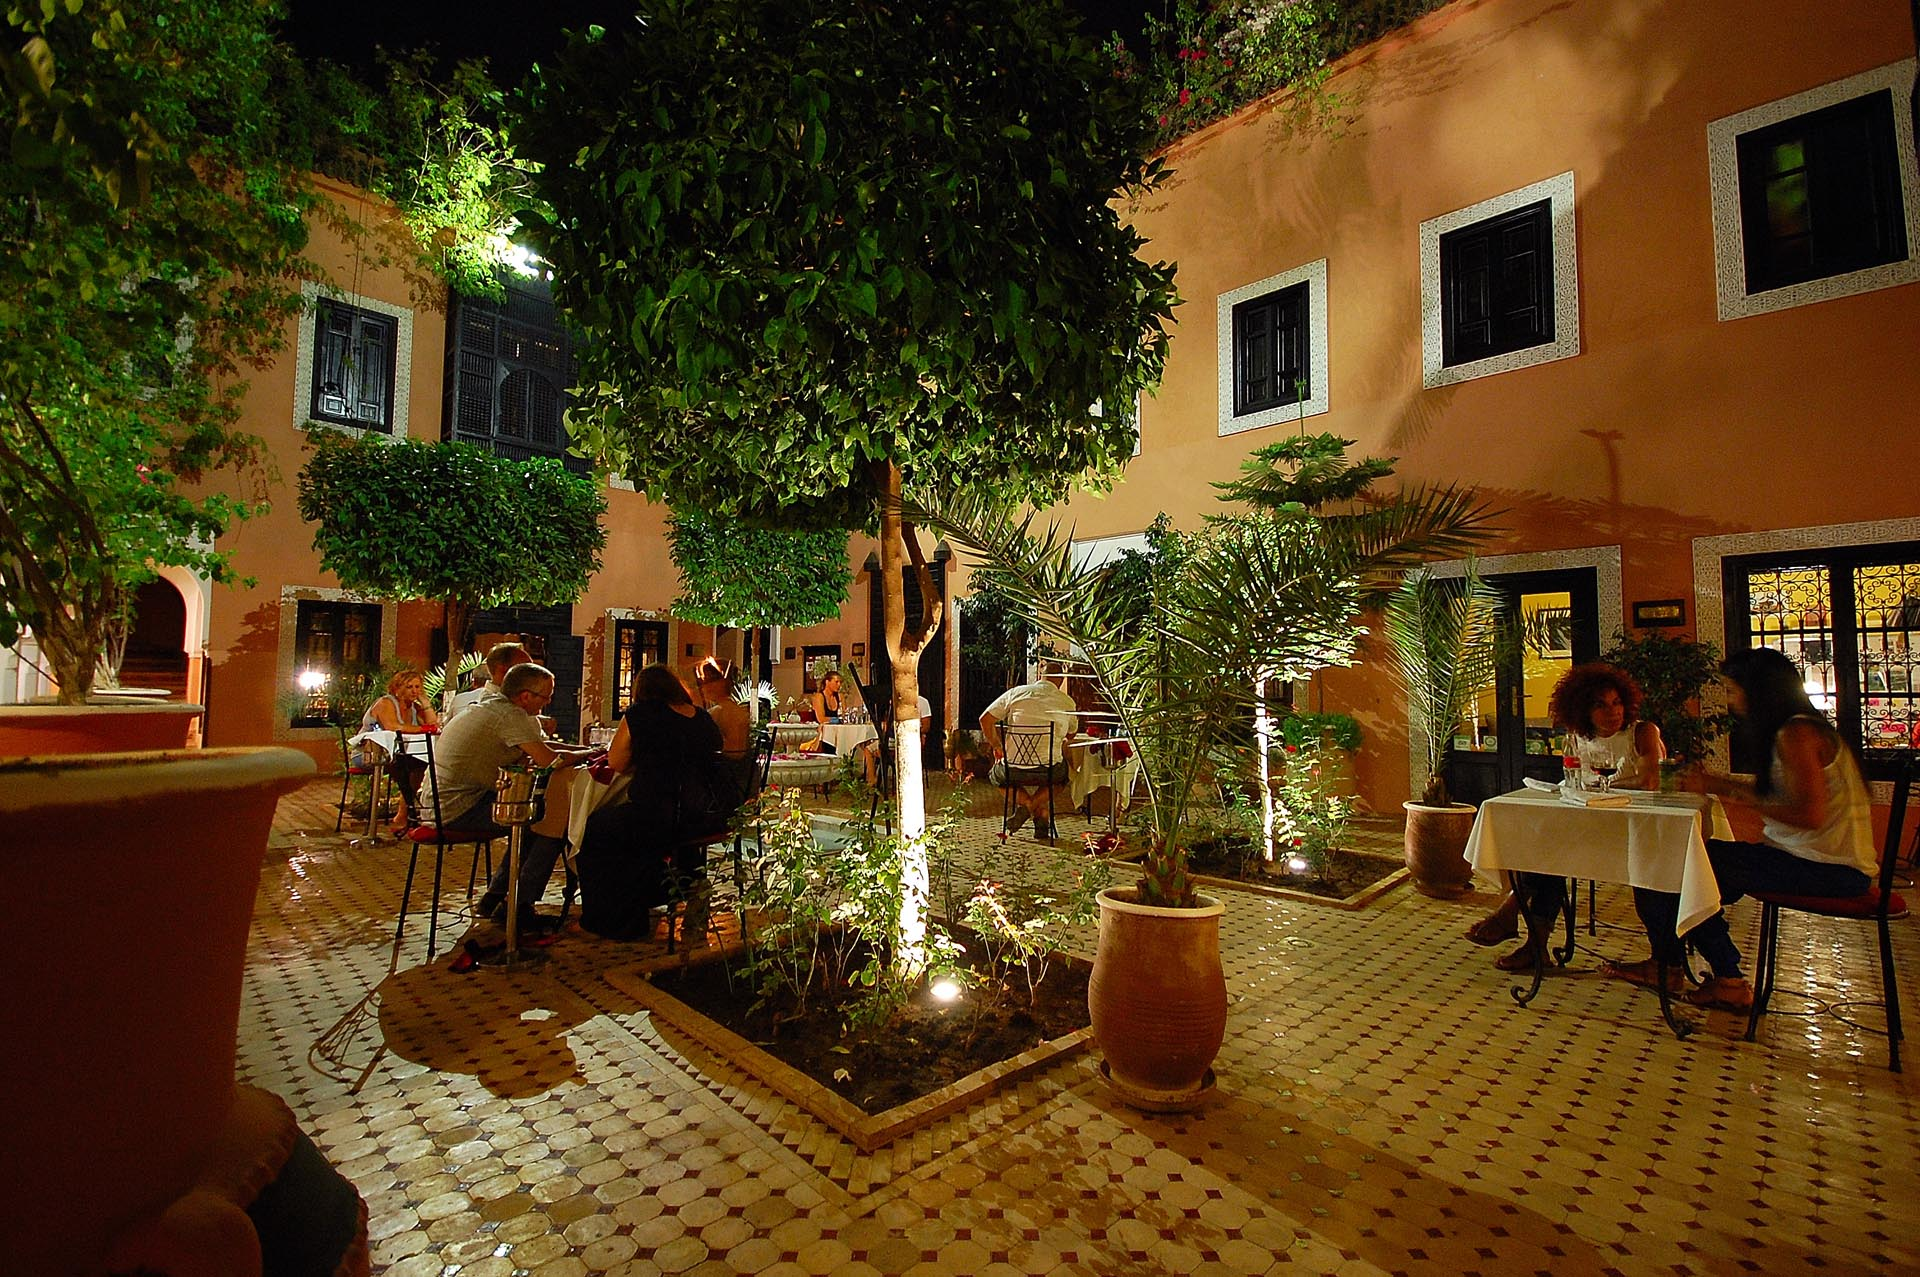 Dinner in the Main Patio